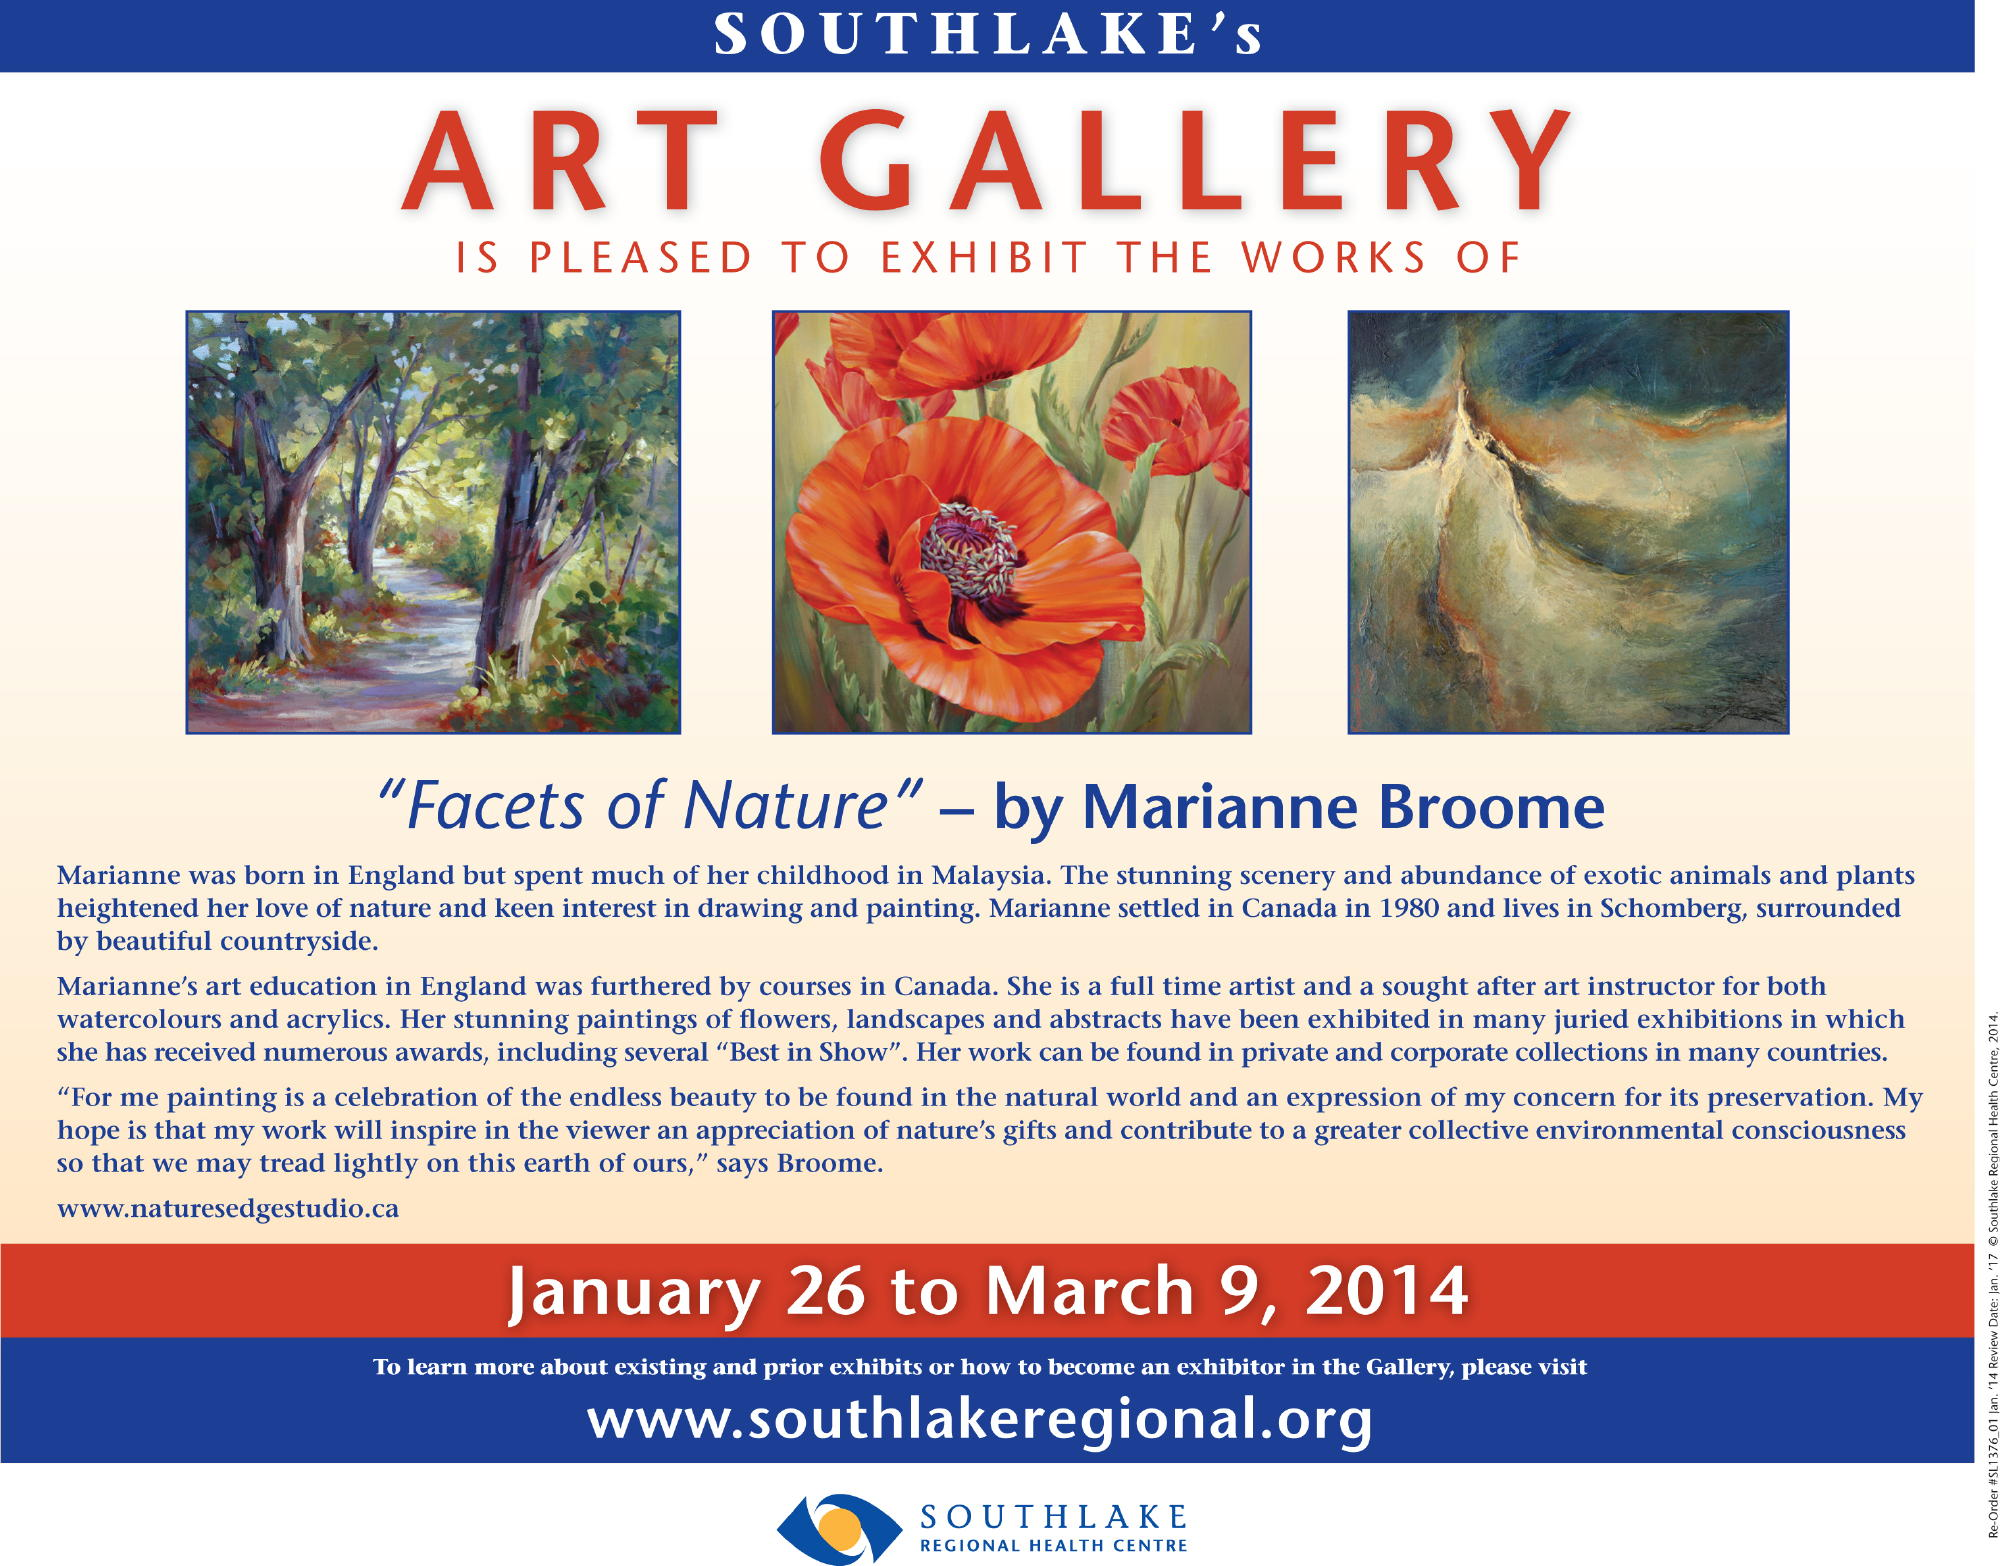 Facets of Nature Show flier